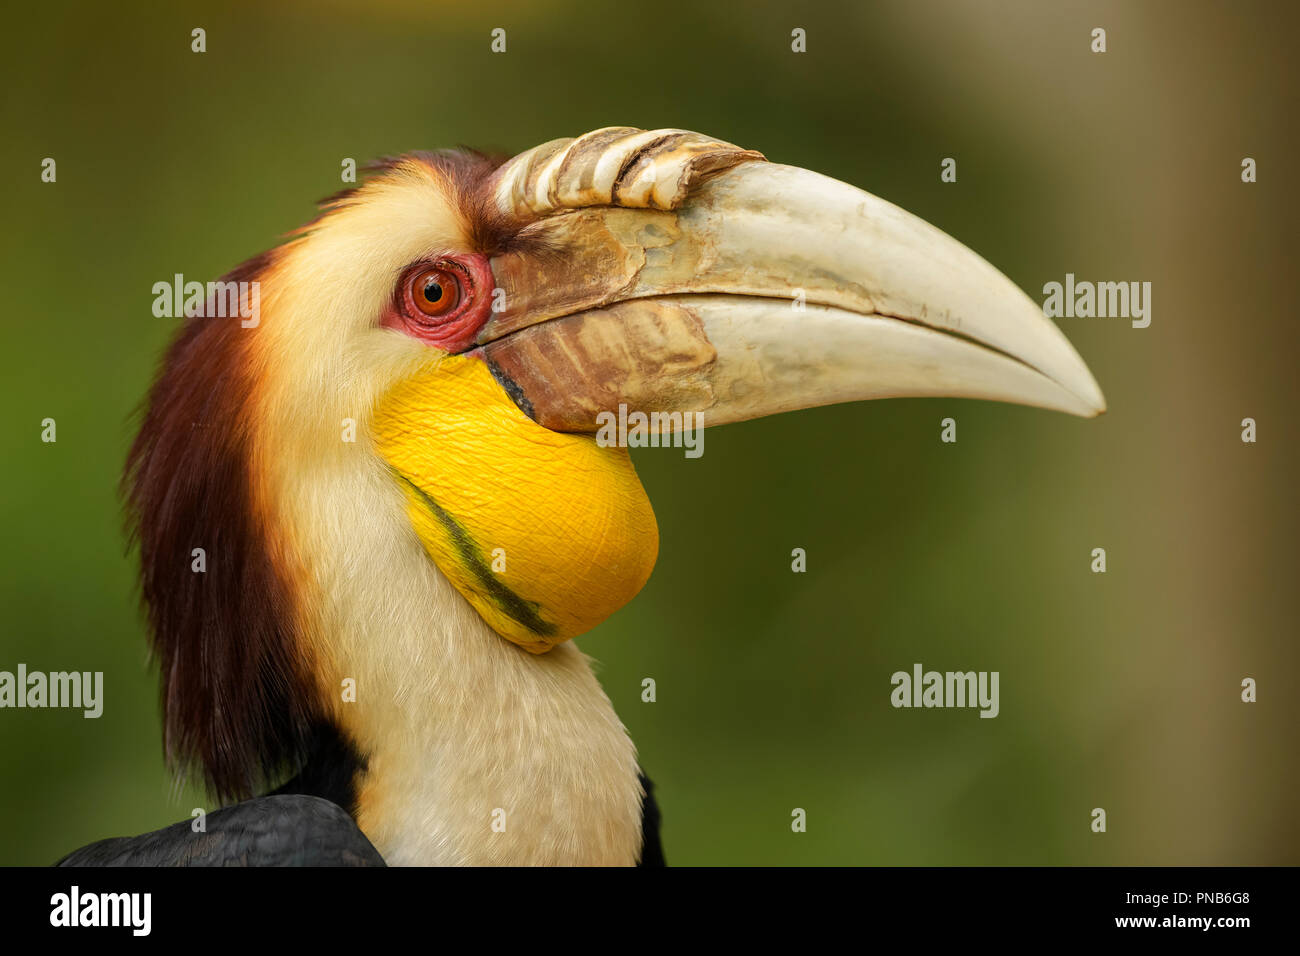 Wreathed Hornbill - Rhyticeros undulatus, beautiful colorful hornbill from Southeast Asian forests and woodlands. - Stock Image